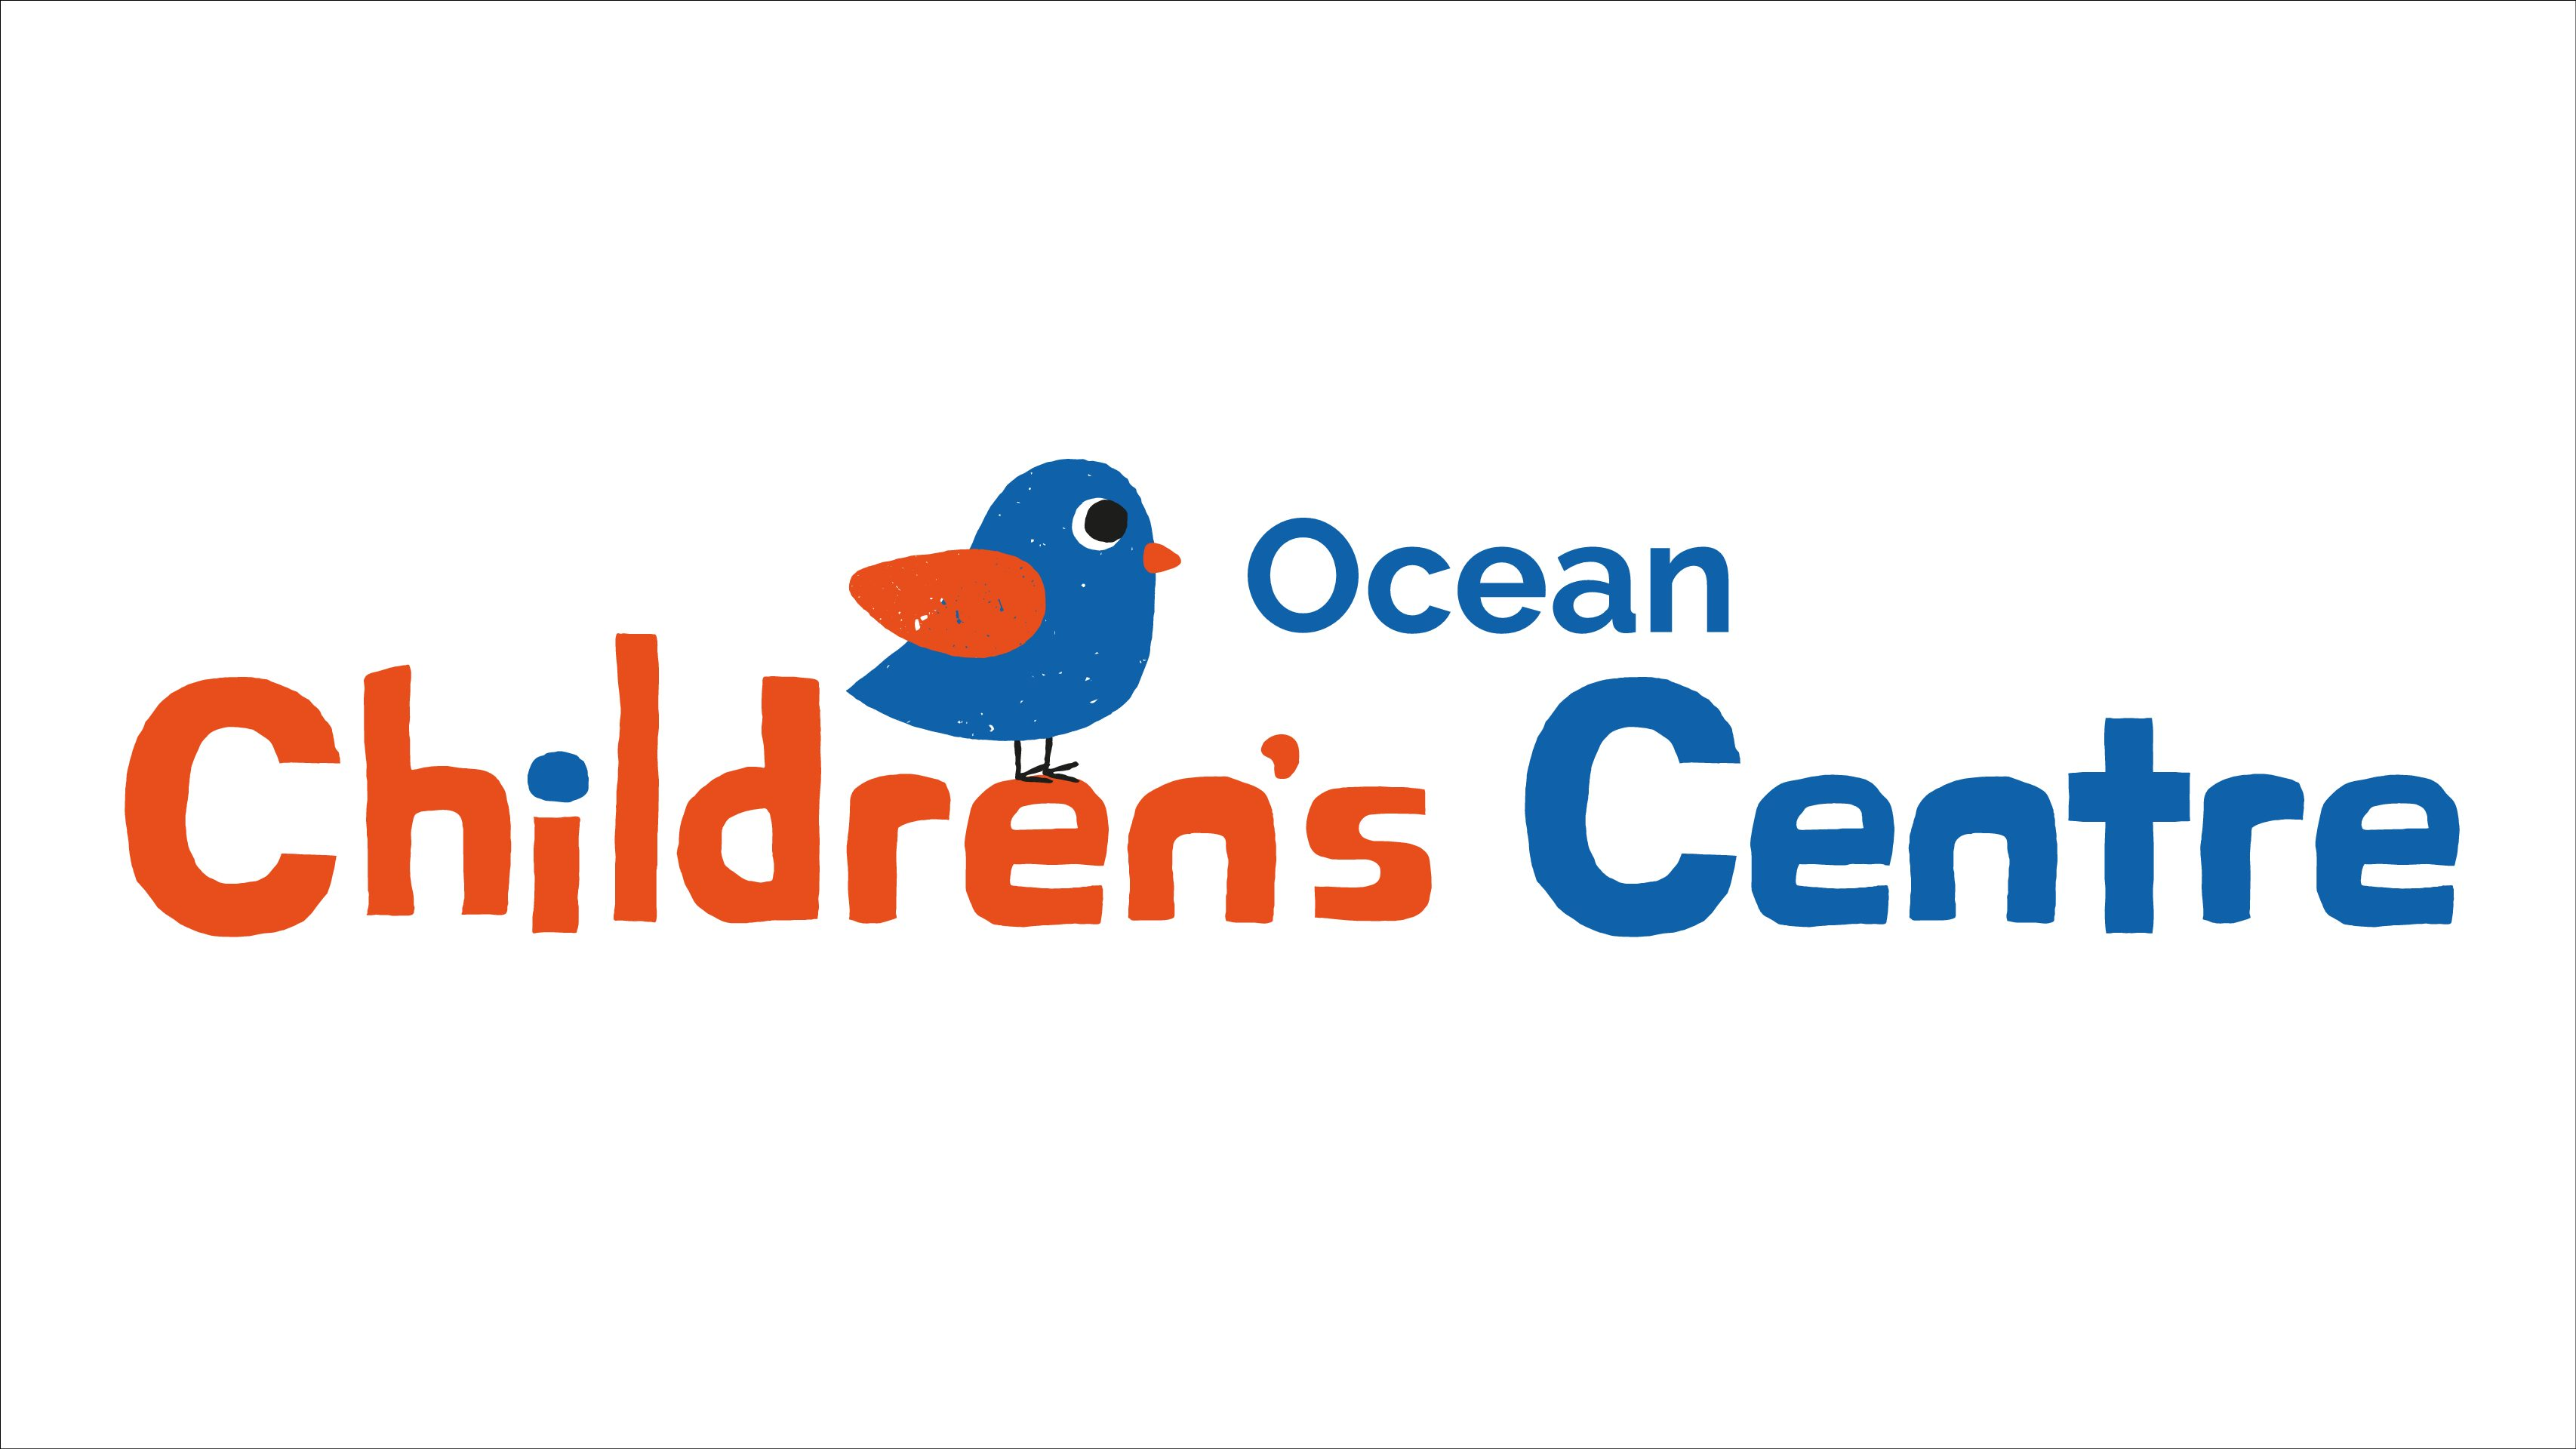 Ocean Children's Centre Summer Activities